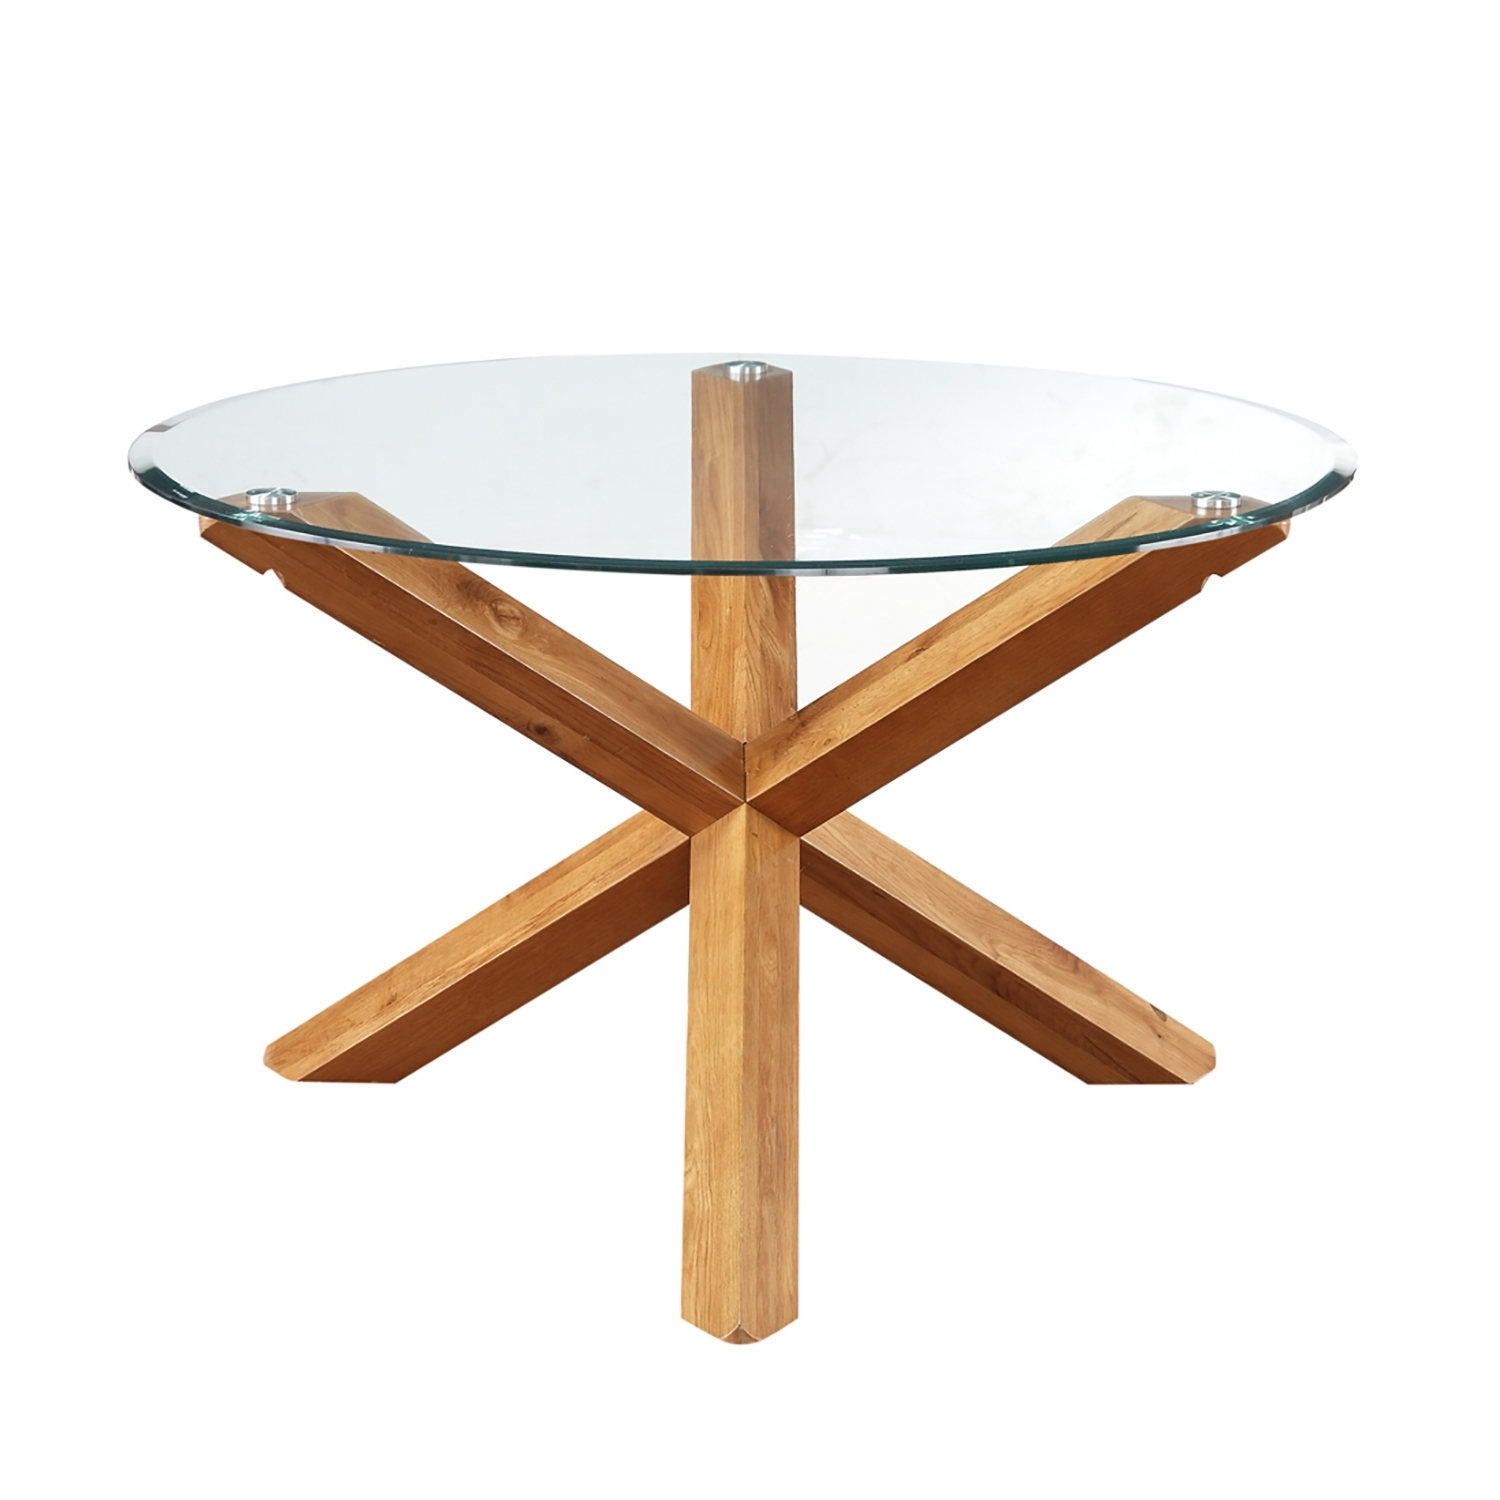 Best And Newest Glass Dining Tables With Oak Legs With Regard To Miso Solid Oak And Glass Dining Table (View 12 of 25)